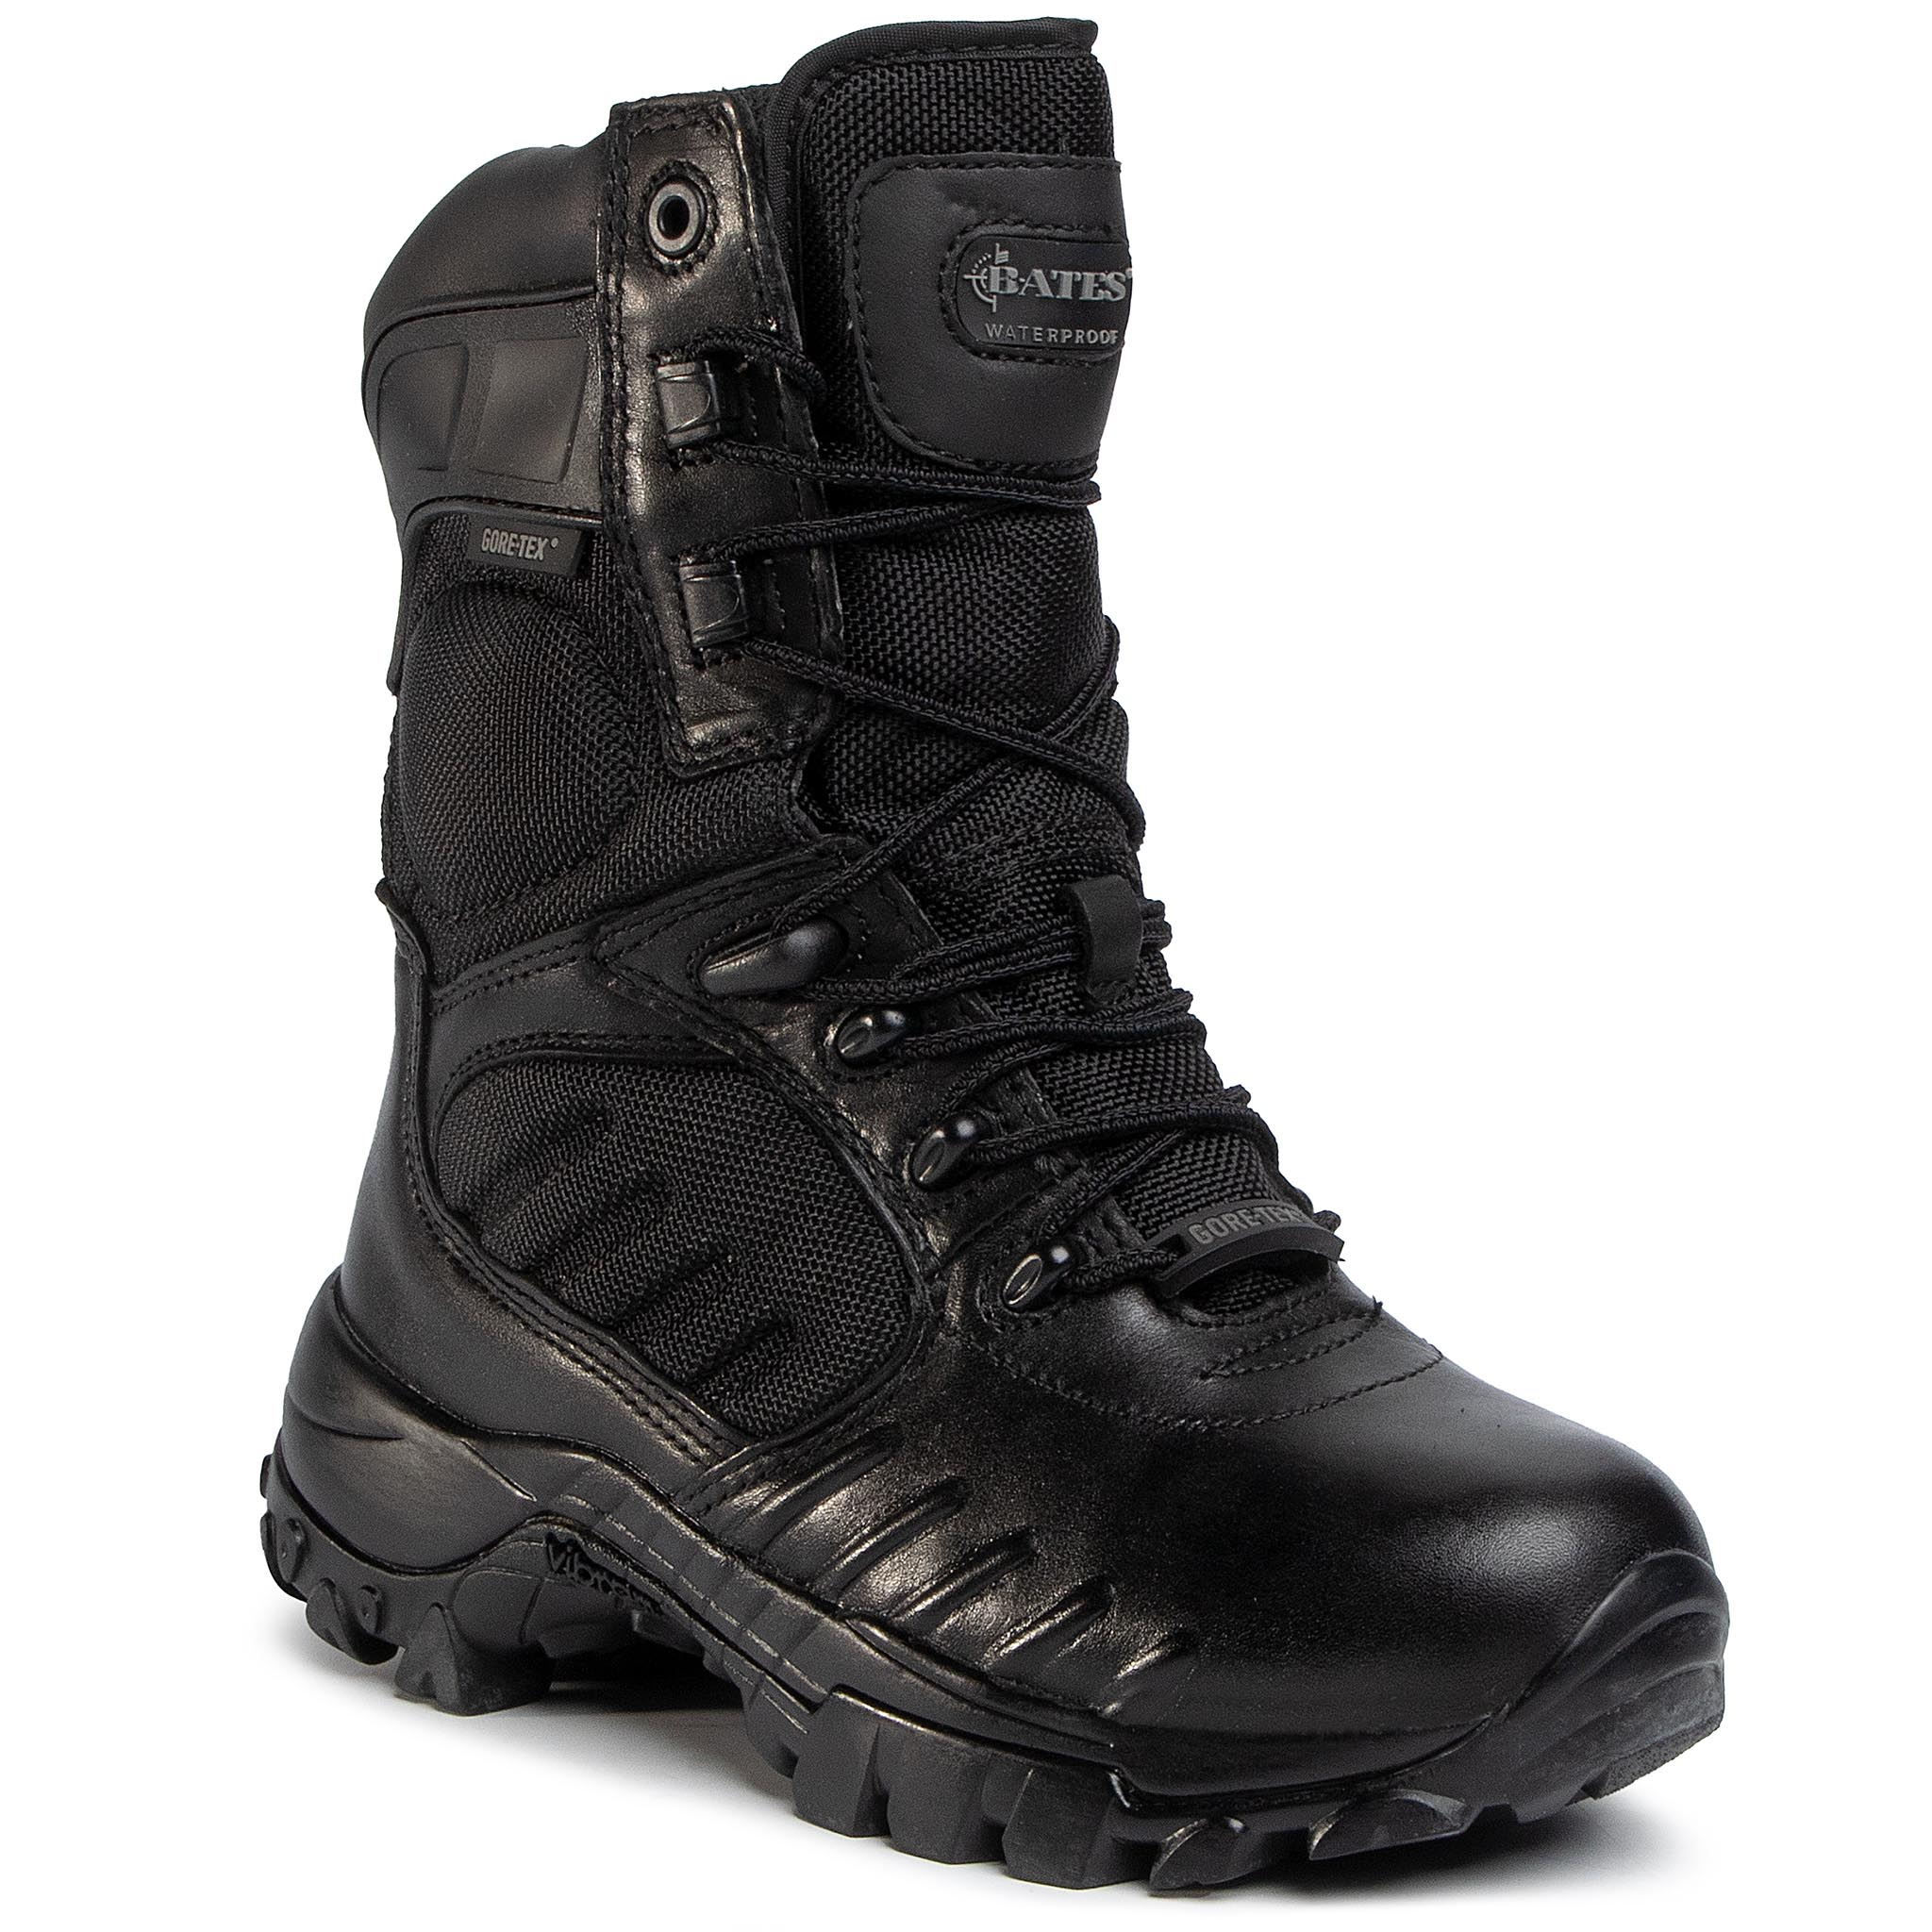 "Pantofi Bates - Enforcer Cts 9"" Lace Gore-Tex E02400 Black imagine epantofi.ro 2021"